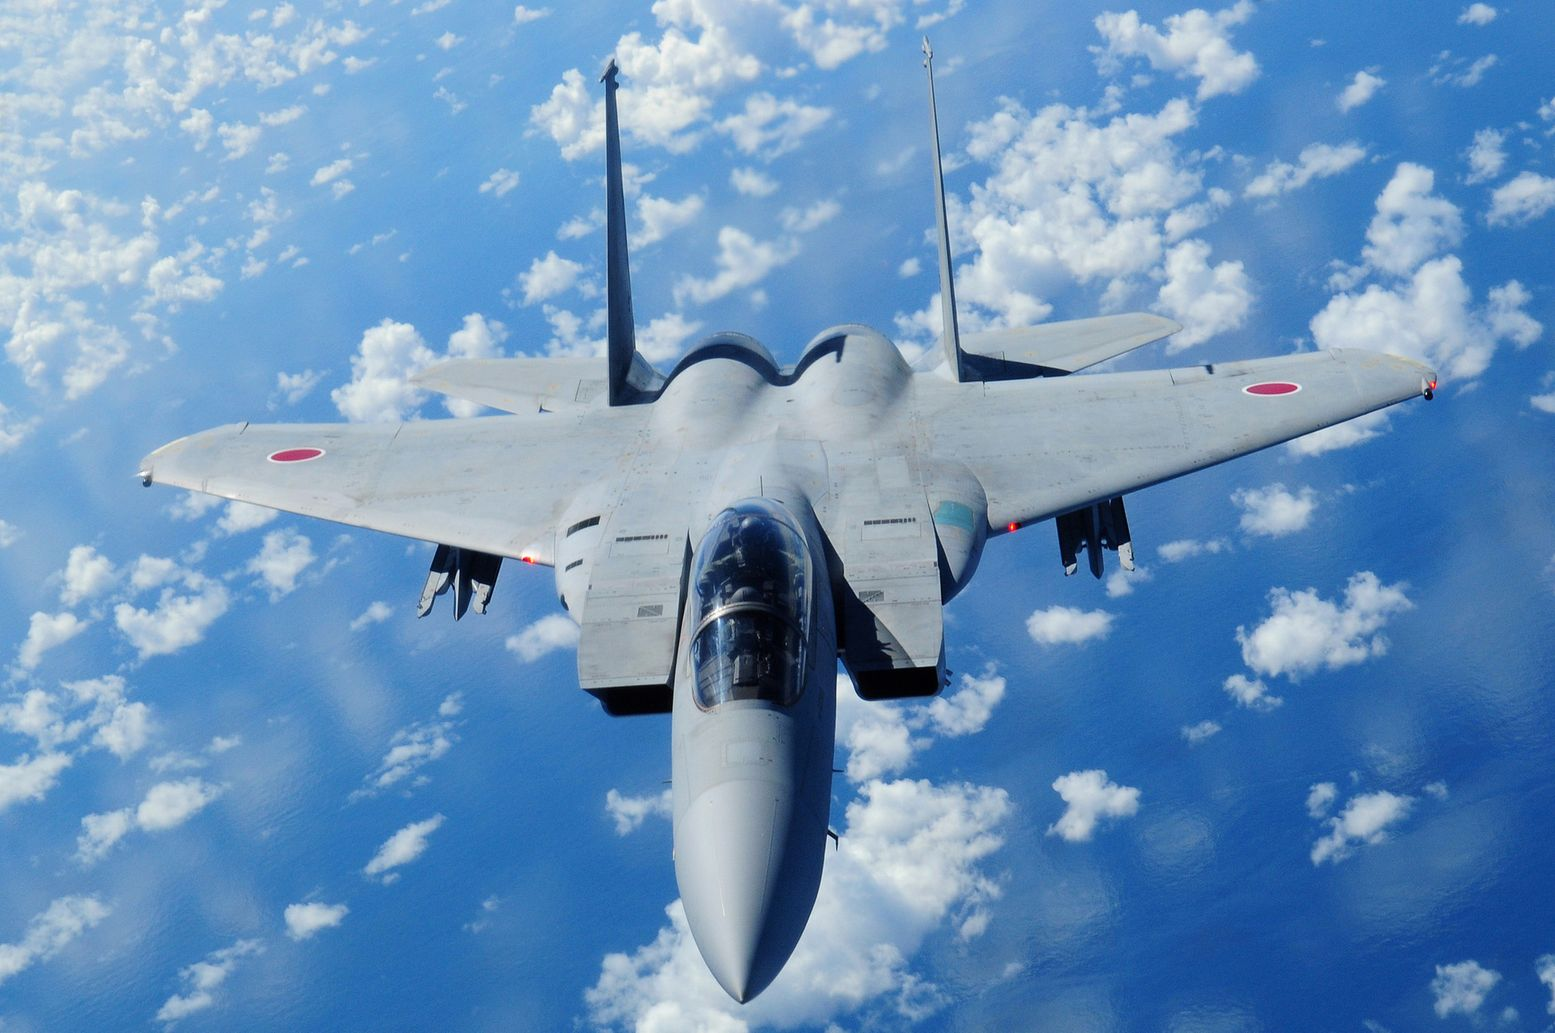 Top Gun Dual: Japan's F-15 vs. China's J-20 Stealth Fighter (Who